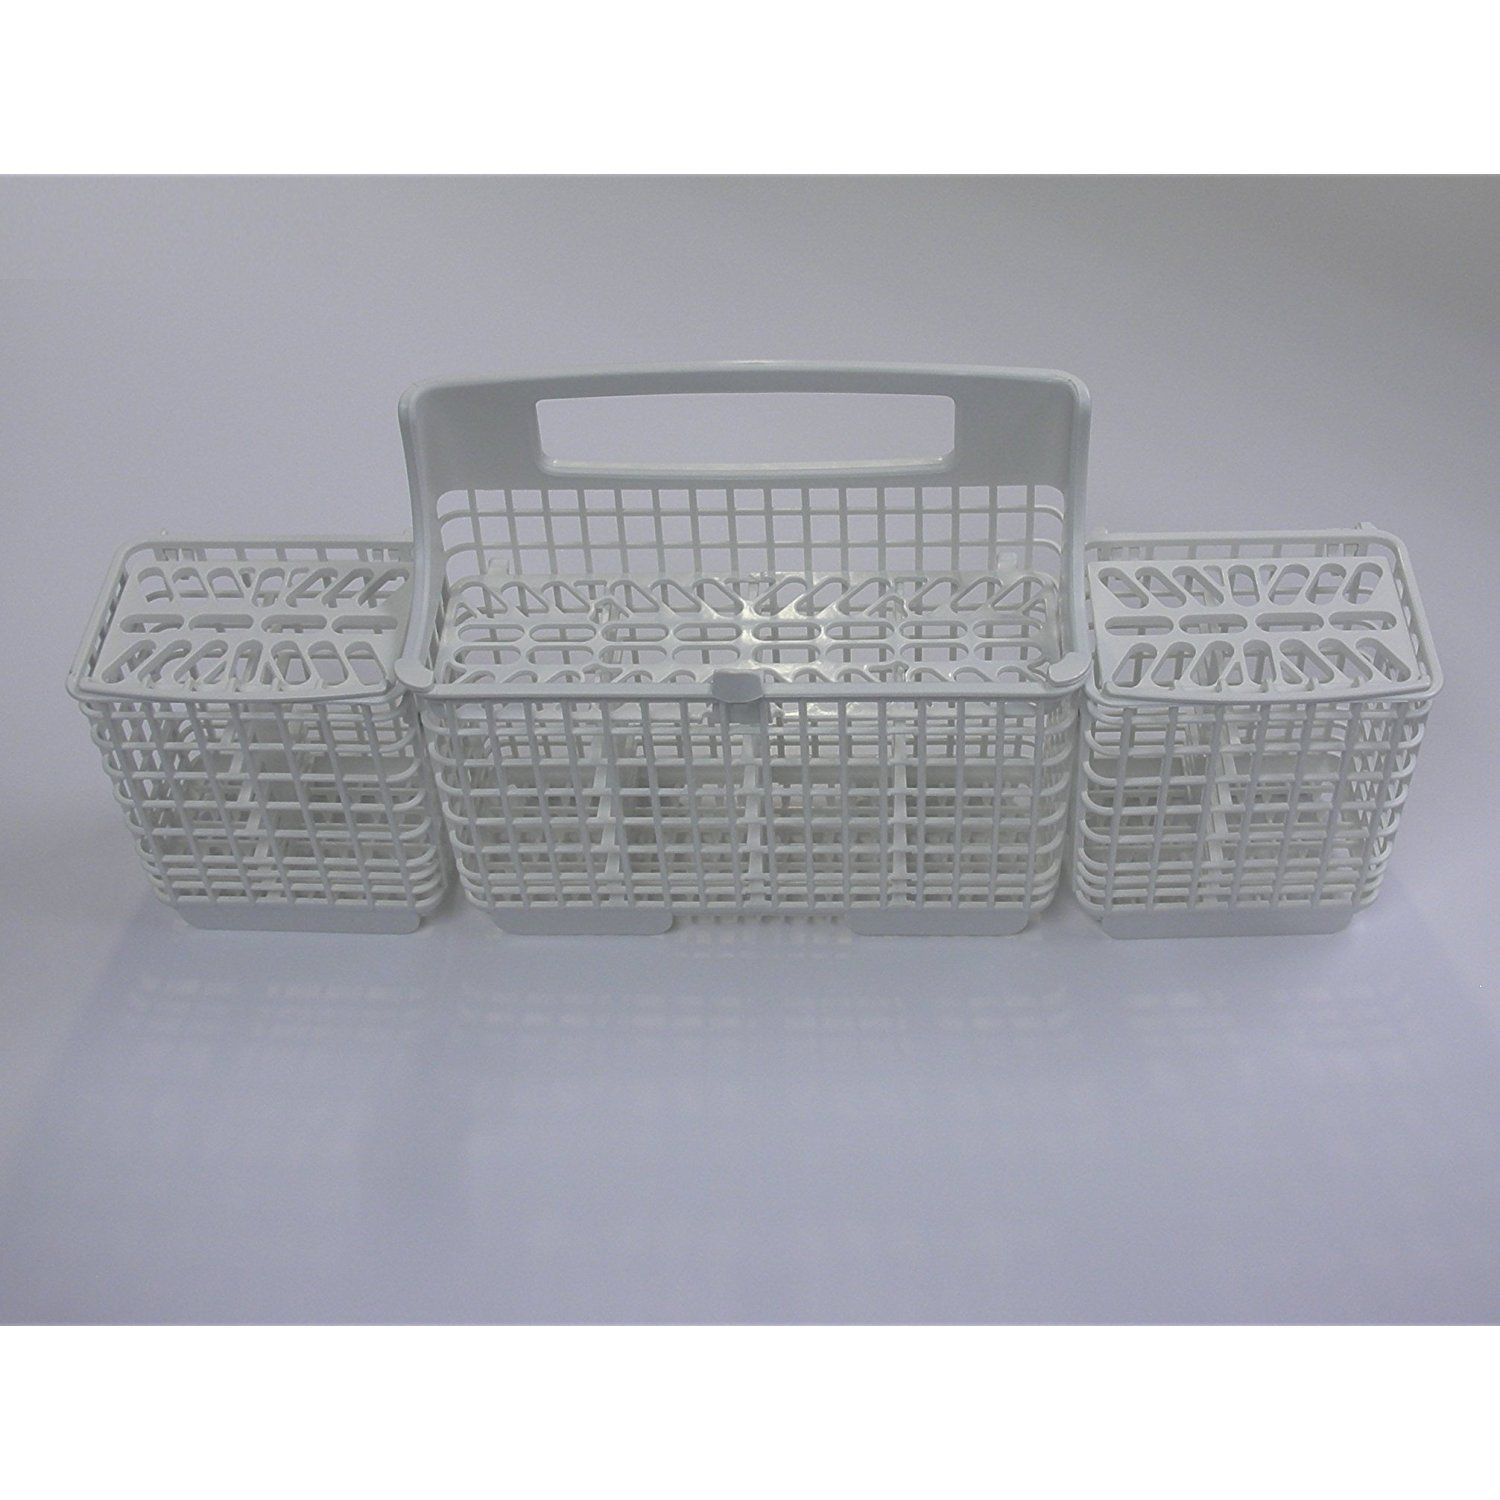 Kenmore Dishwasher Silverware Basket 8562080 White You Can Find More Details By Visiting The Image Link This Kenmore Dishwasher Dishwasher Reviews